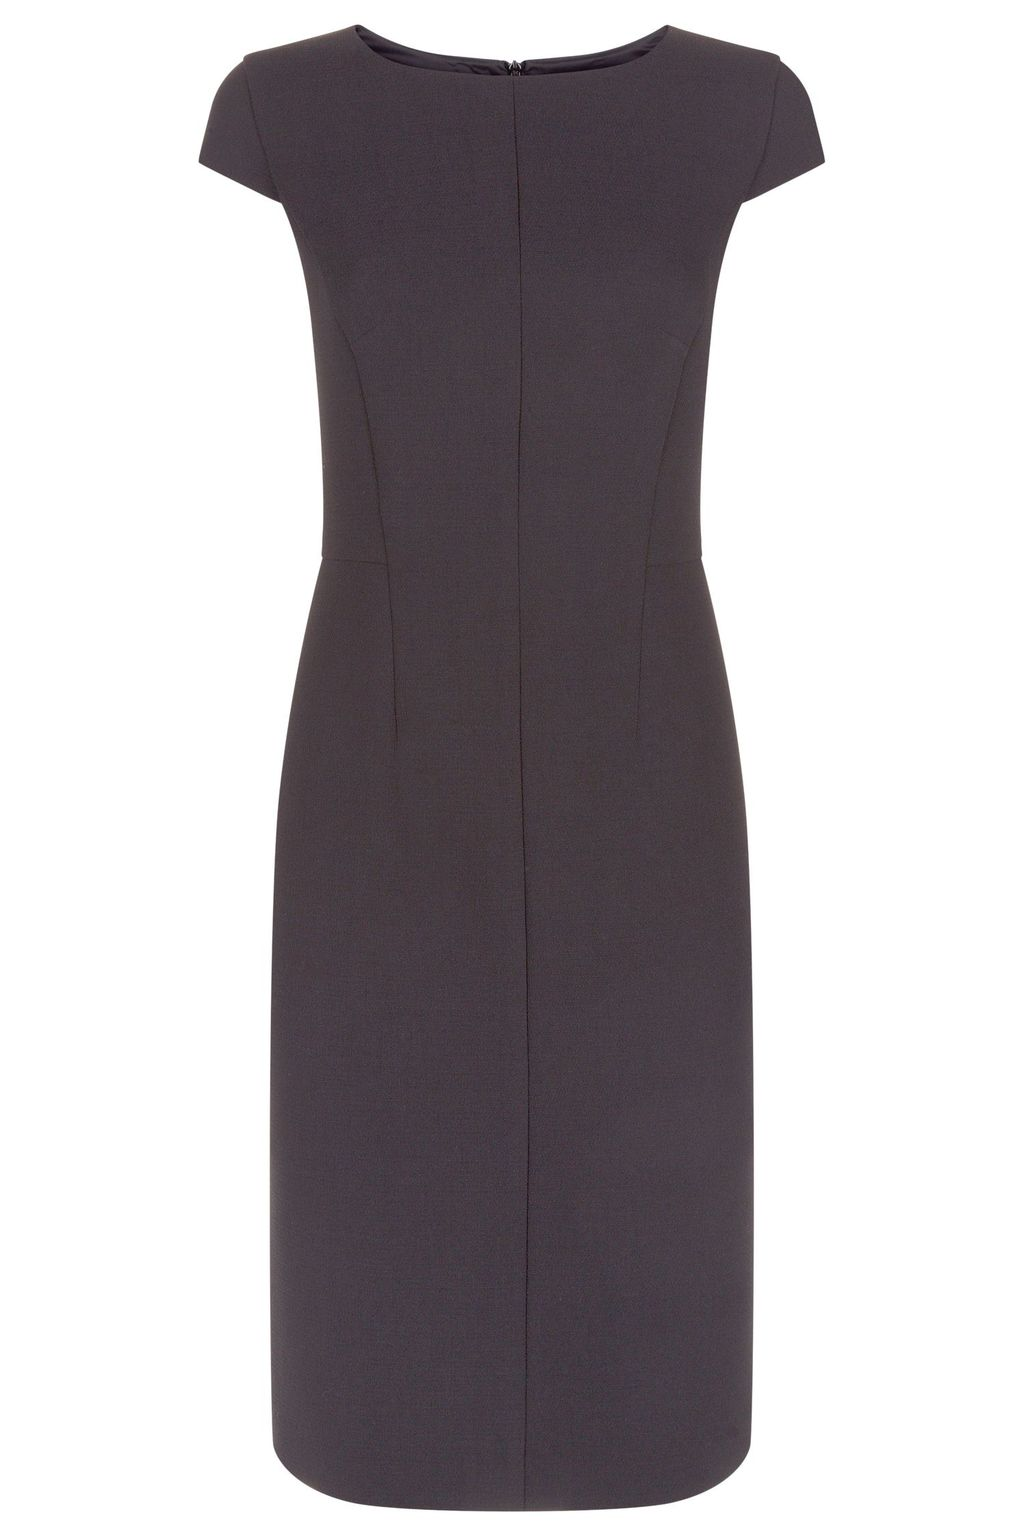 Orbit Dress, Granite - style: shift; sleeve style: capped; fit: tailored/fitted; pattern: plain; predominant colour: charcoal; length: on the knee; fibres: polyester/polyamide - 100%; occasions: occasion; neckline: crew; sleeve length: short sleeve; texture group: crepes; pattern type: fabric; season: s/s 2016